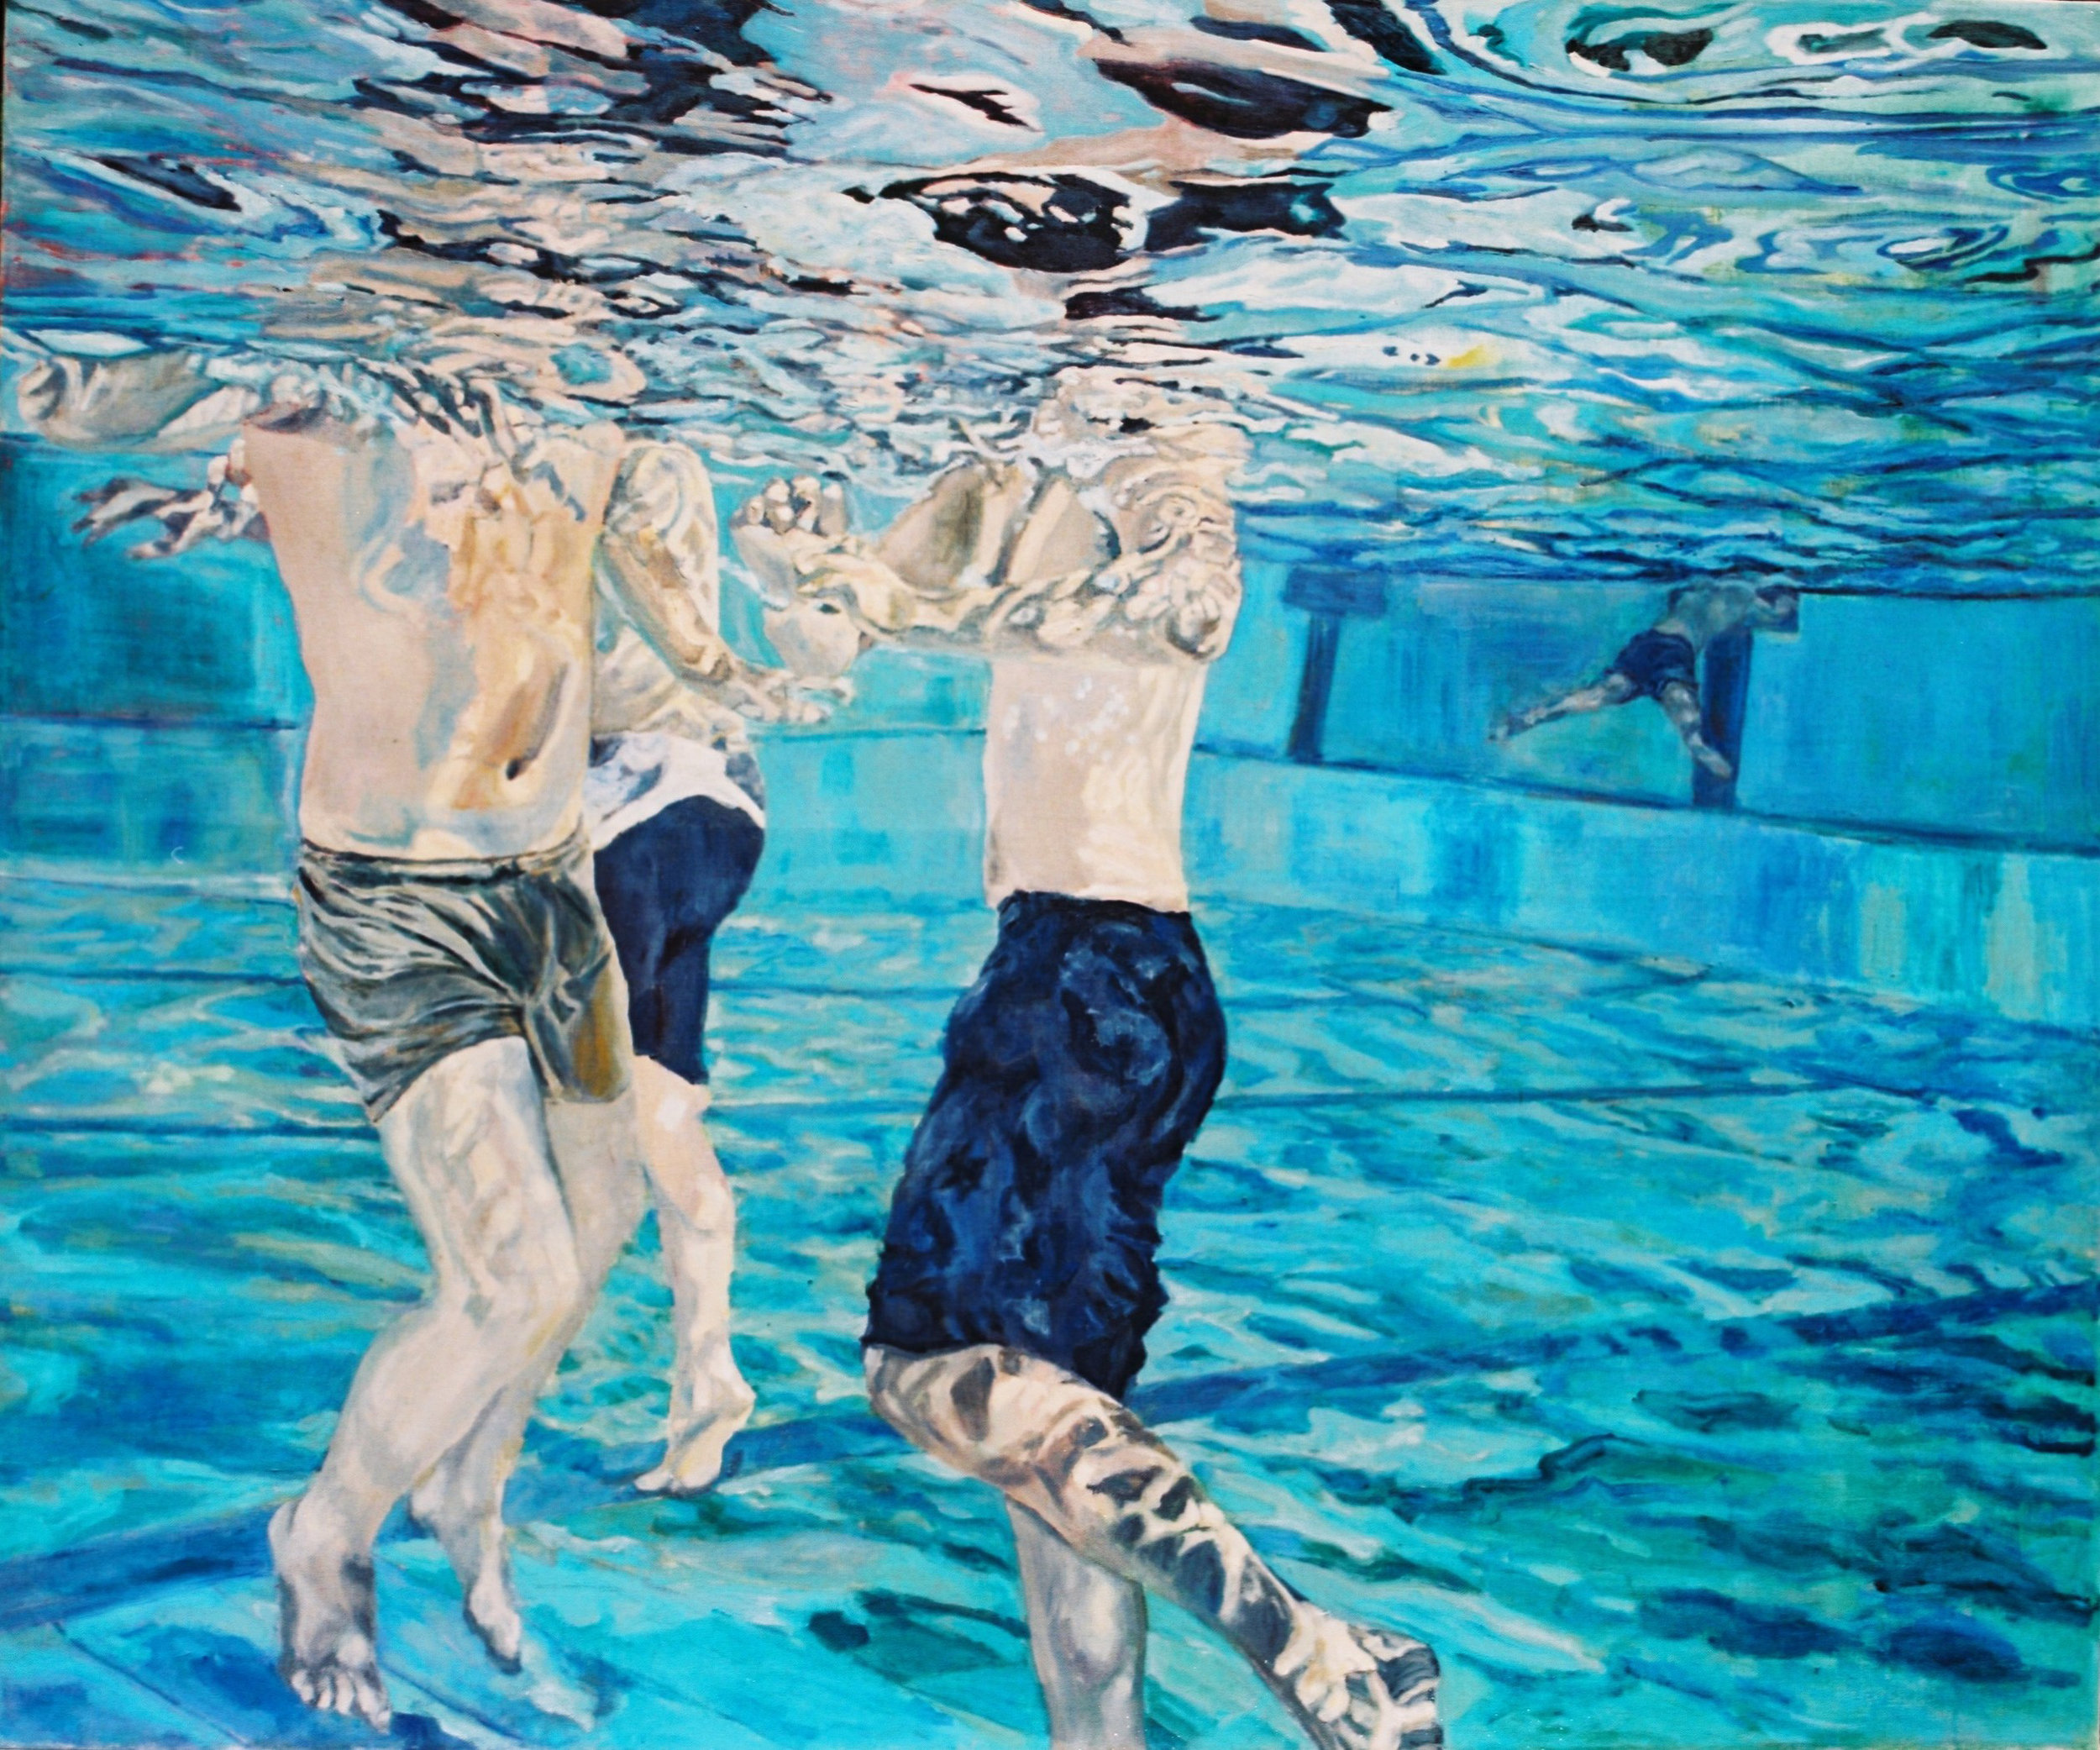 2009  waterboys 110x130cm oil on canvas.jpg Debbie Kampel  דבי קמפל, ילדי מים, שמן על בד.jpg